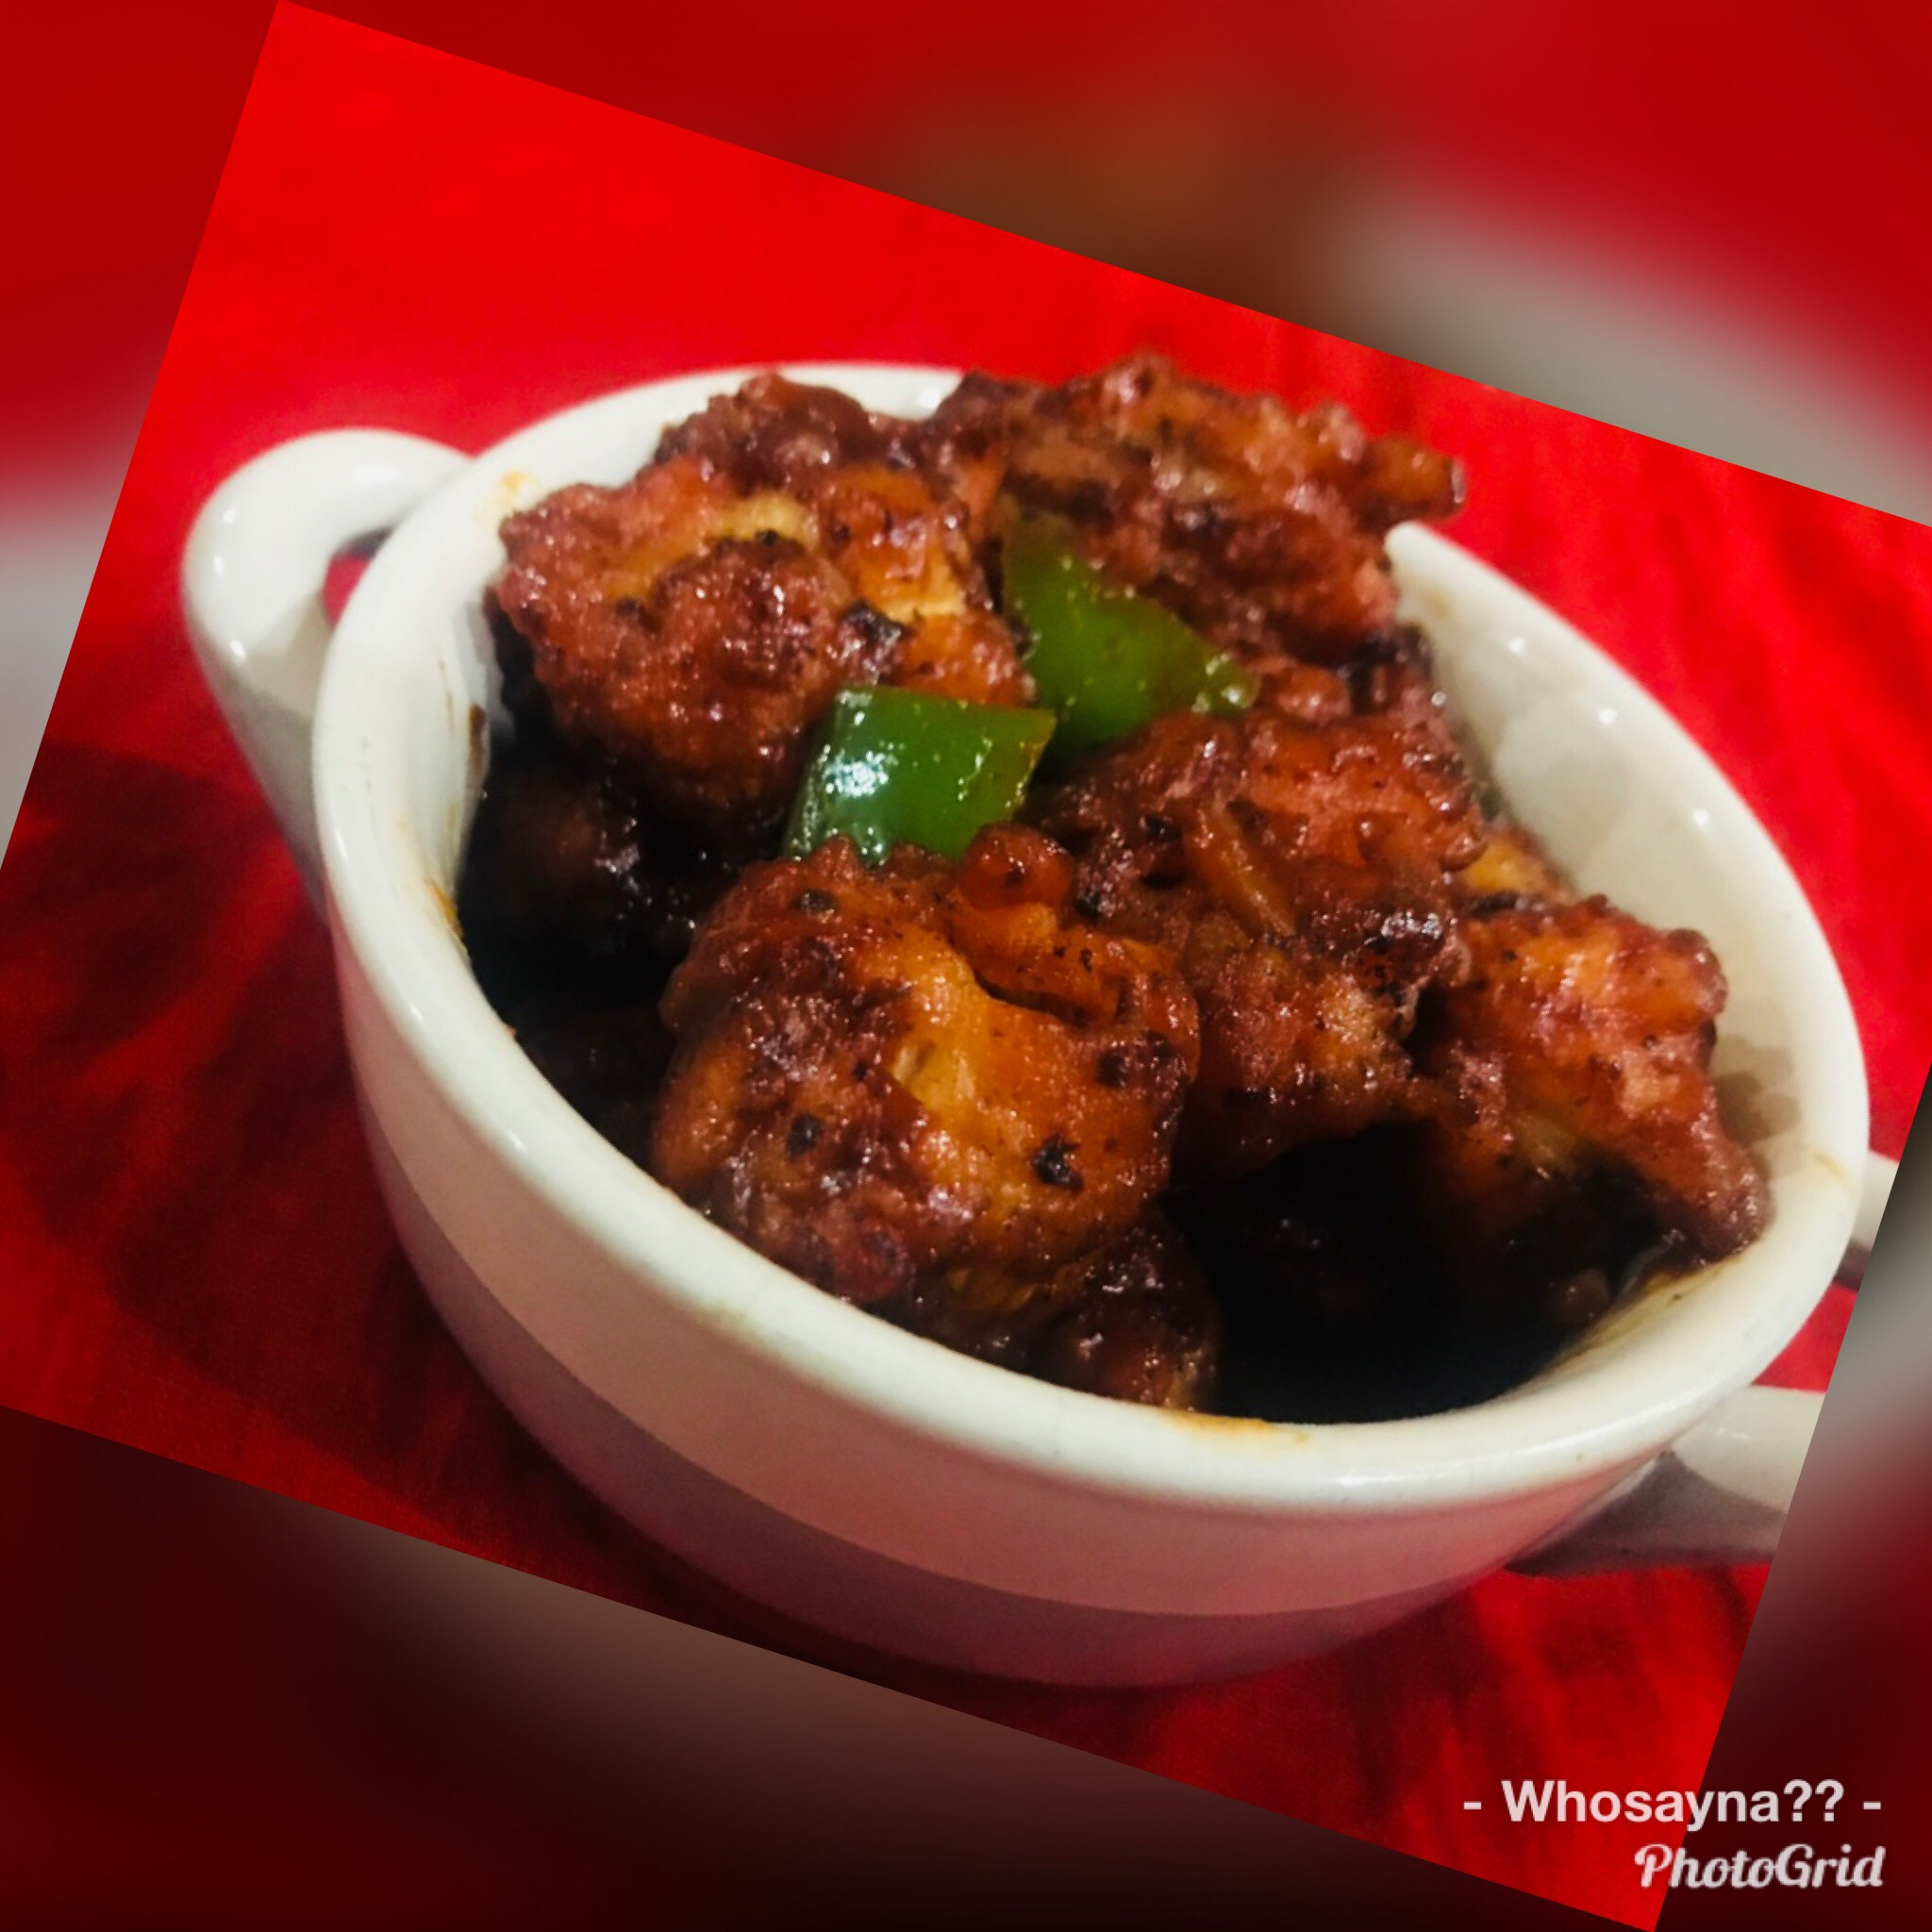 Whosayna's Cripy Chicken topped with Hot n Sweet Sauce